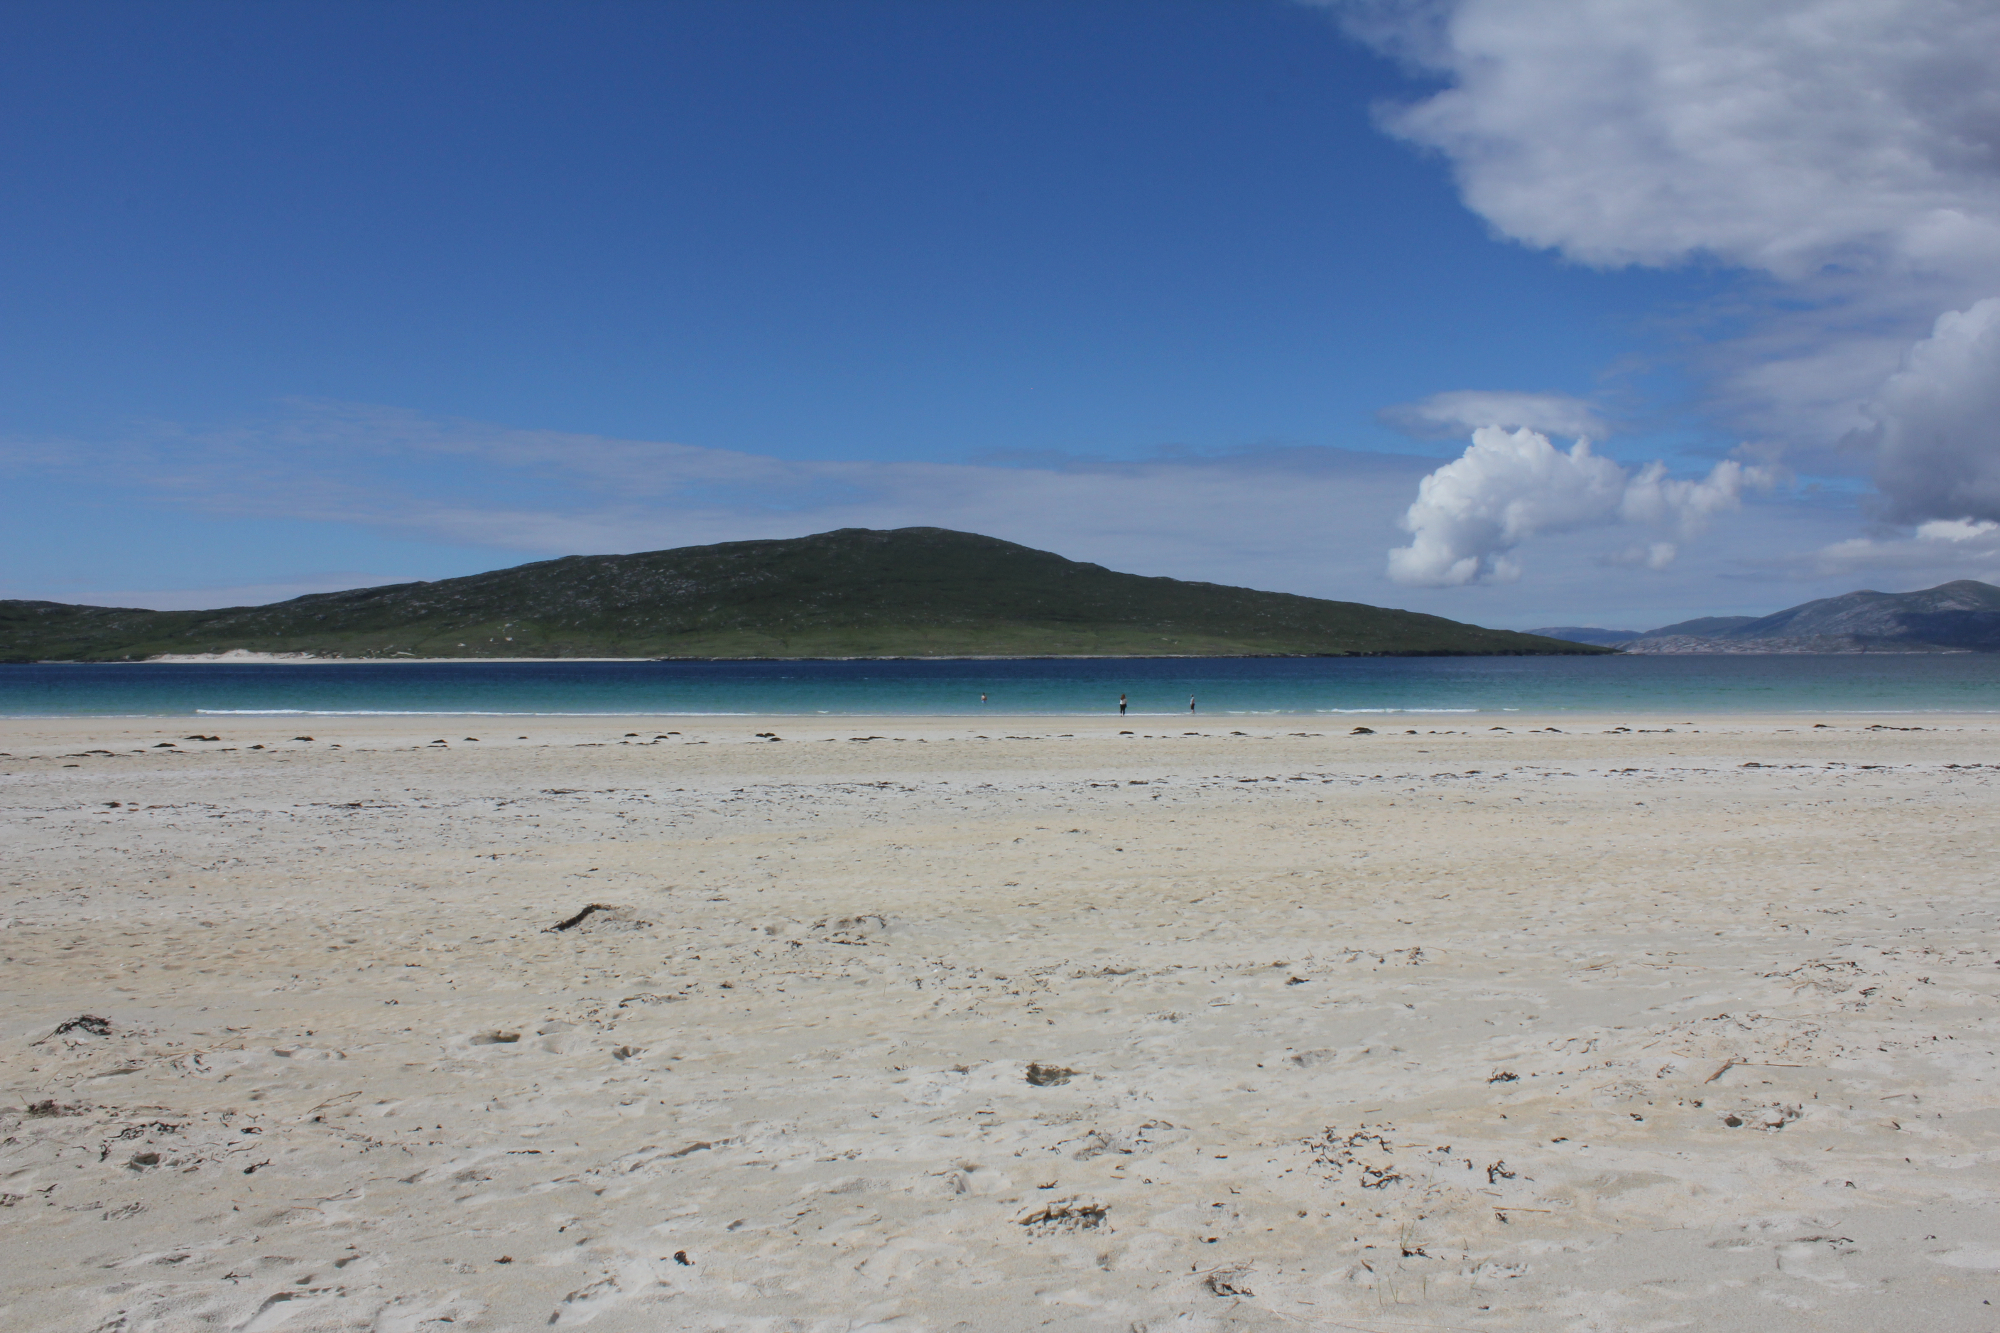 The sand and sea of Luskentyre Beach